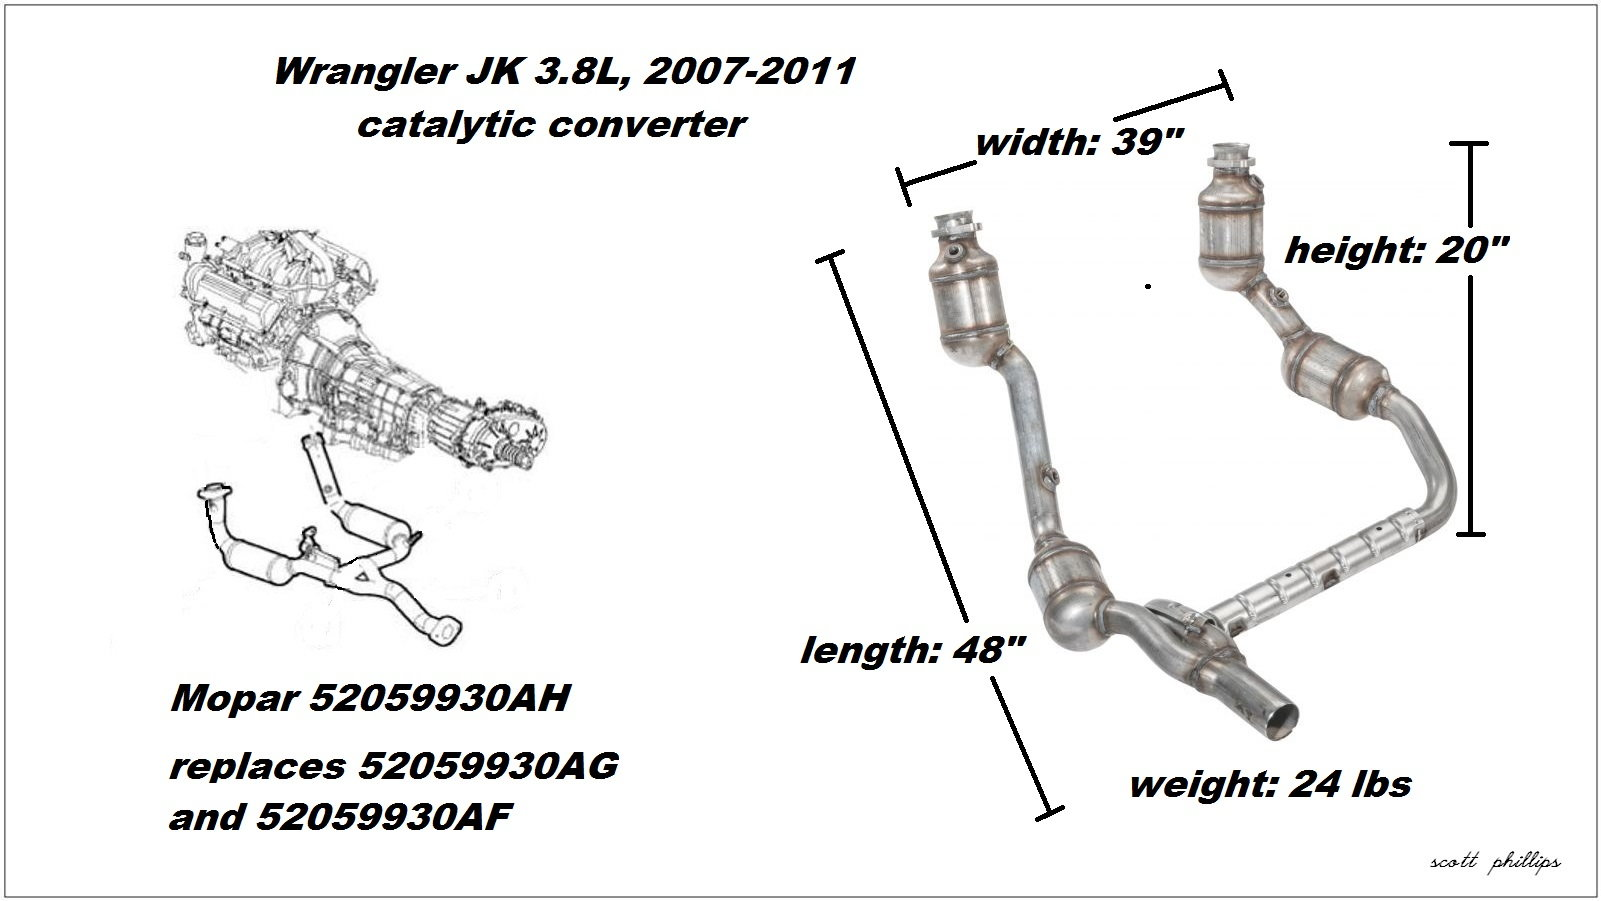 hight resolution of figure 1 3 8l catalytic converter assembly